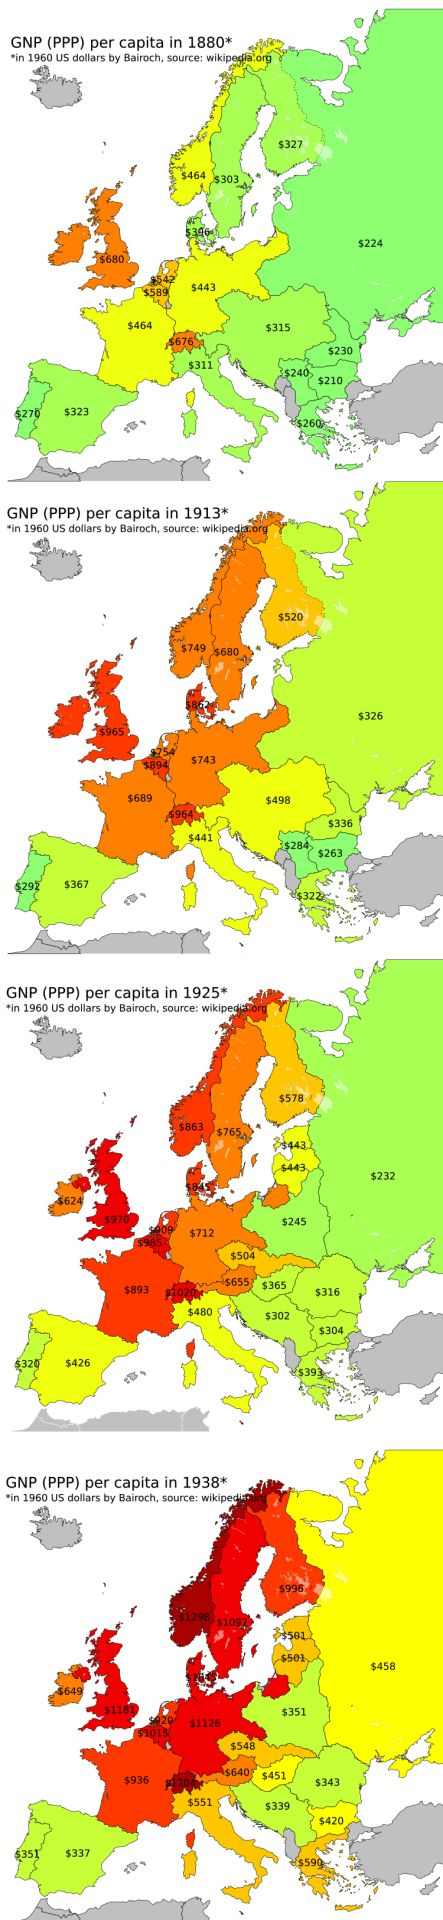 gnp per capita in europe between